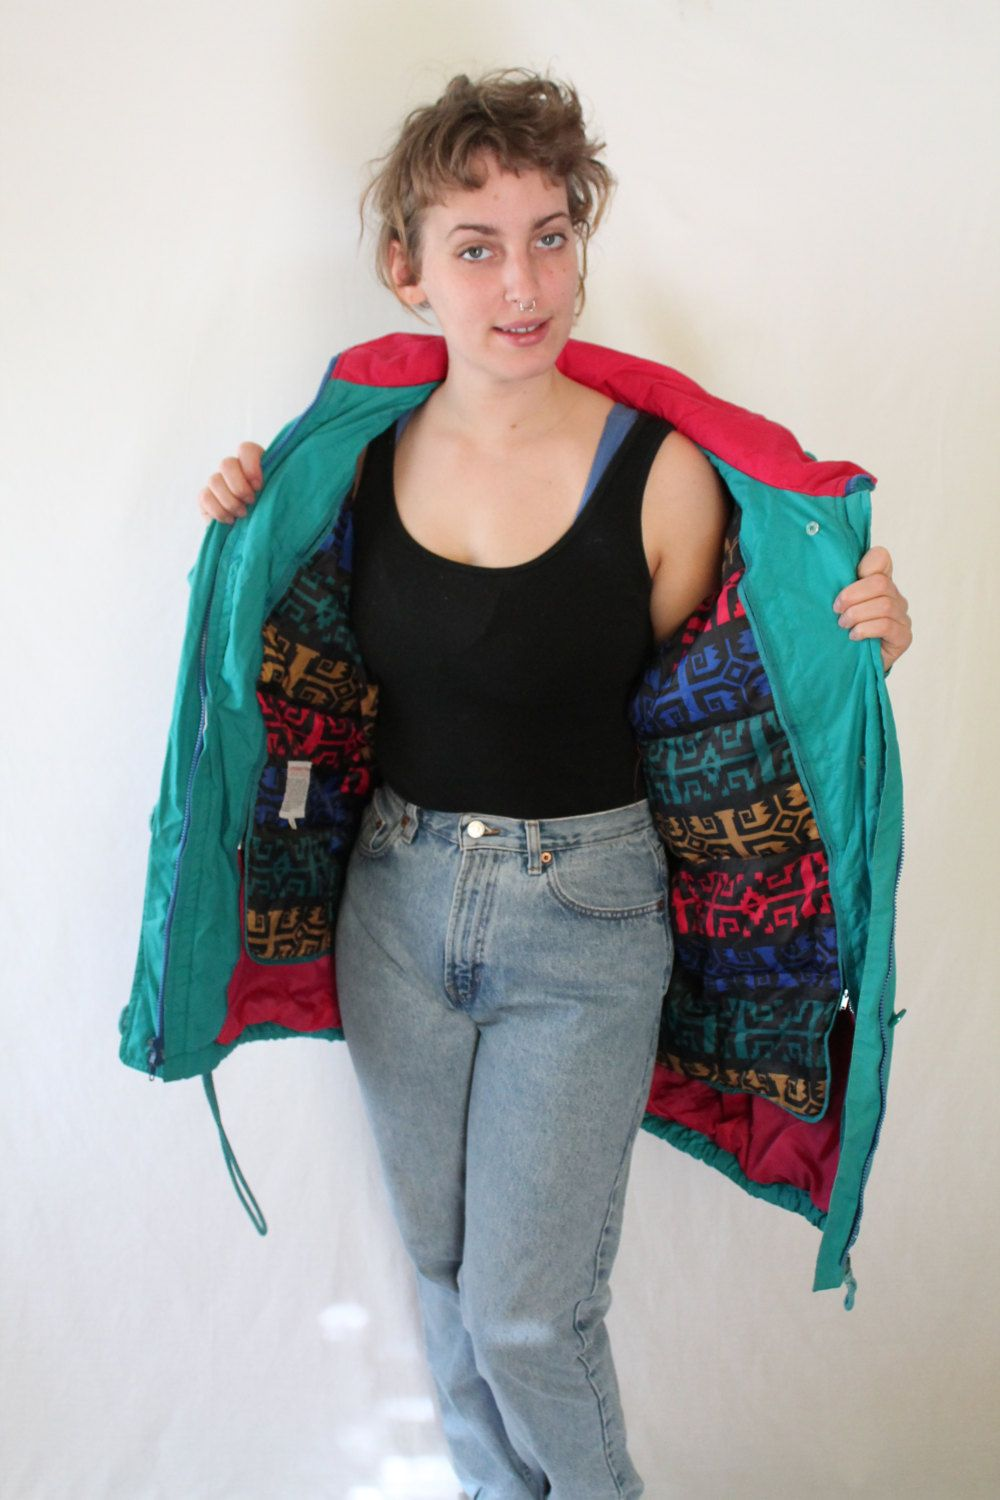 Sweet 90s Teal LONDON FOG Lined Parka // Pink Hood Rad and Colorful IKAT Zip Out Liner // Mac Demarco Soft Grunge by VegaGenesisVintage on Etsy